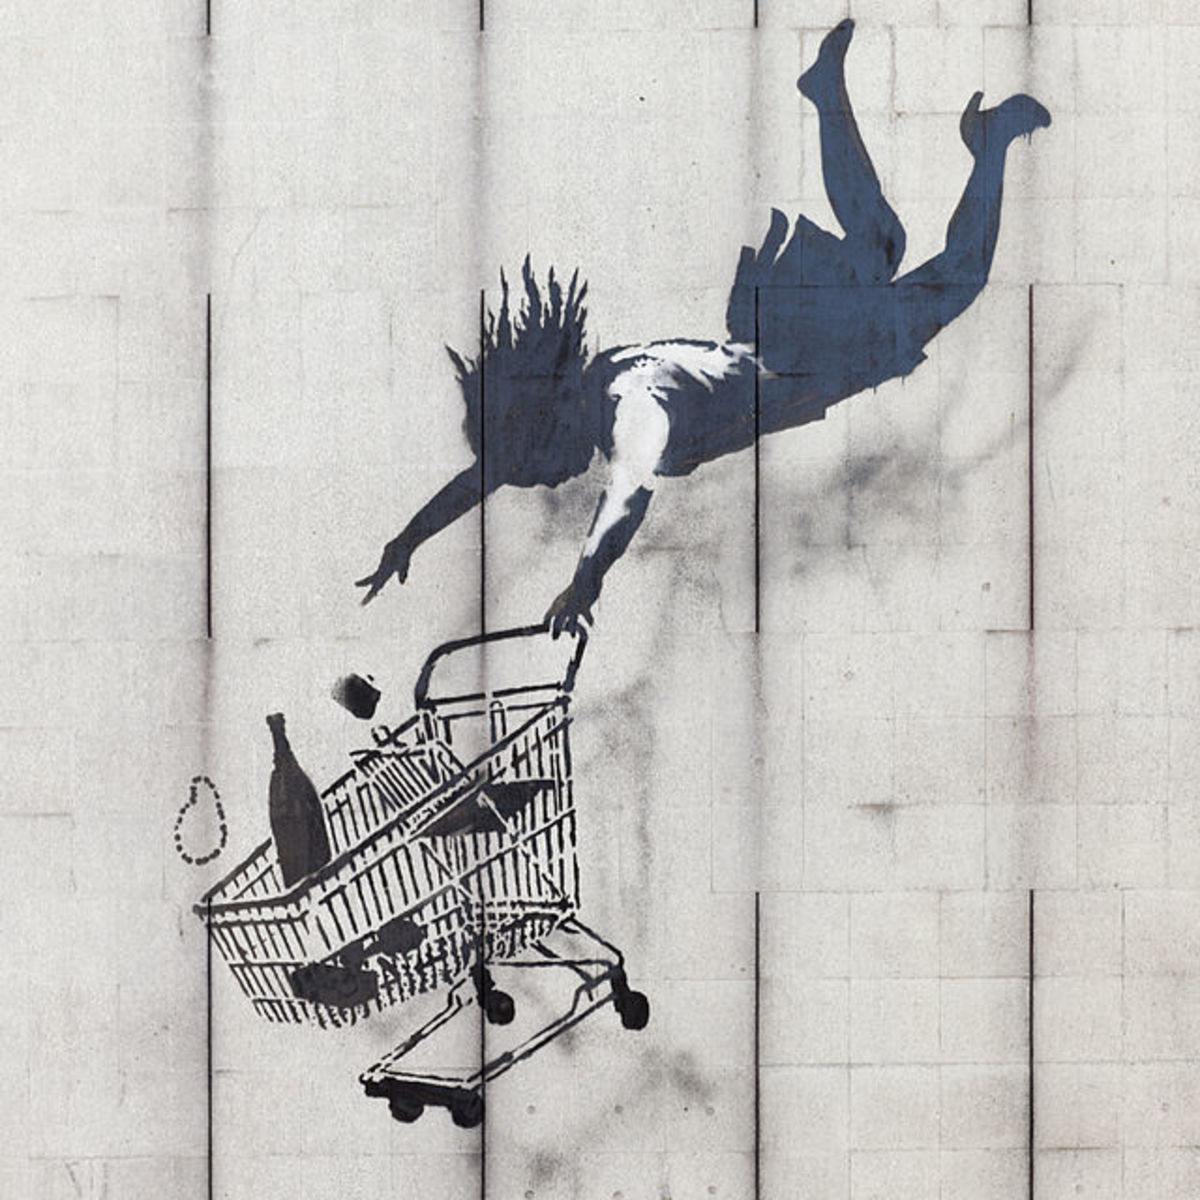 Shop Until You Drop by Banksy.  This mural is in Mayfair, London.  Beginning in Bristol, England, Banksy's work can now be found across many cities in the UK and around the world.